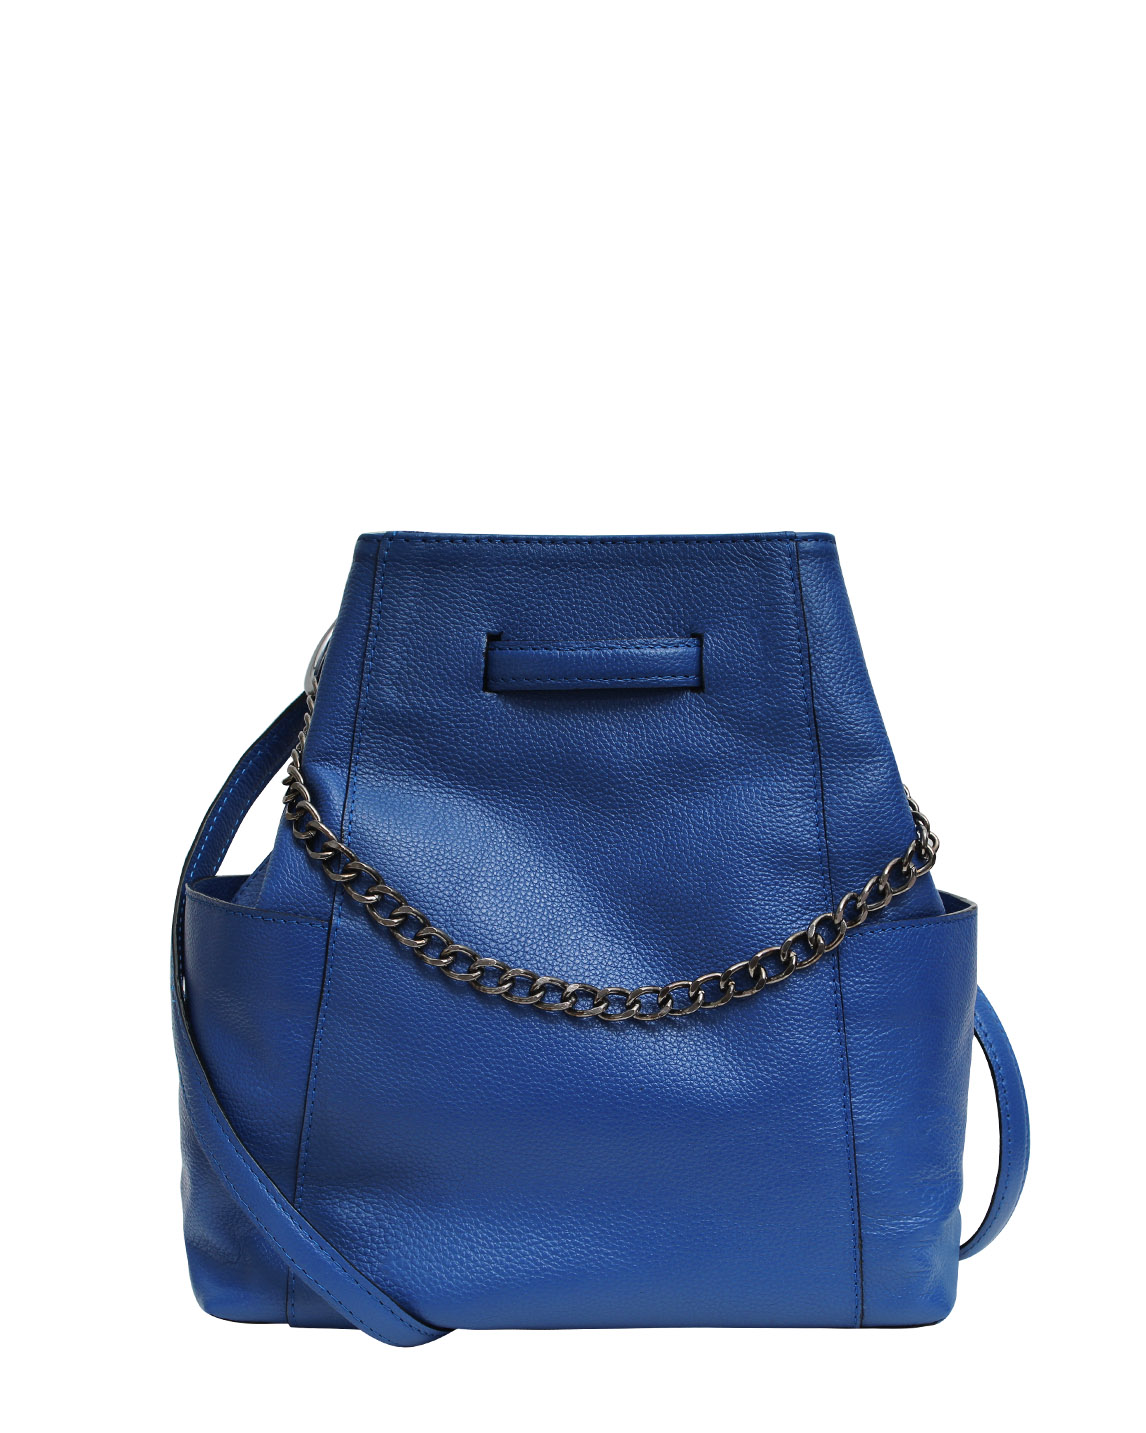 Cartera Backpack DS-3128 Color Azul